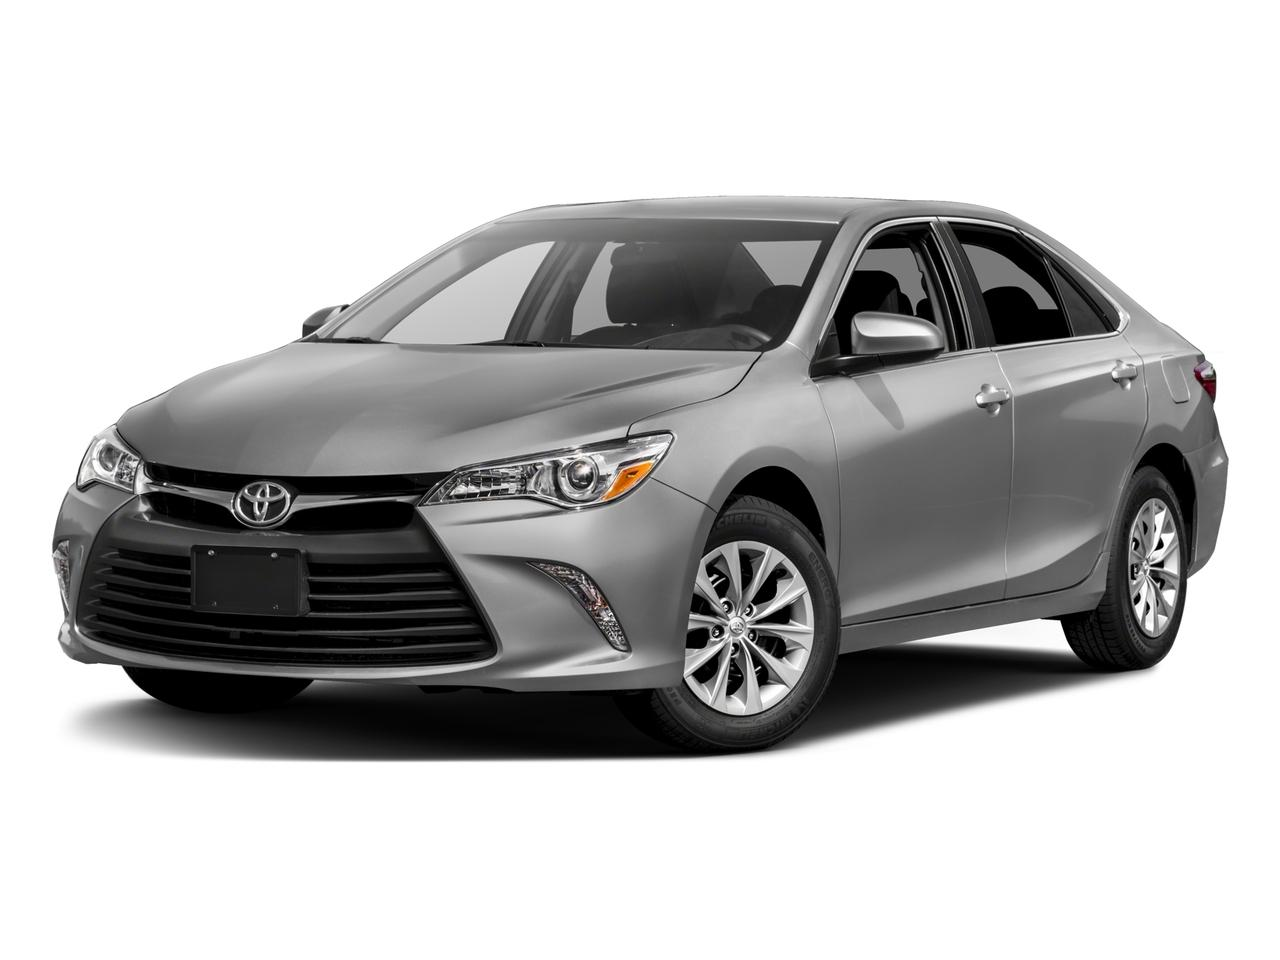 2017 Toyota Camry Vehicle Photo in Portland, OR 97225